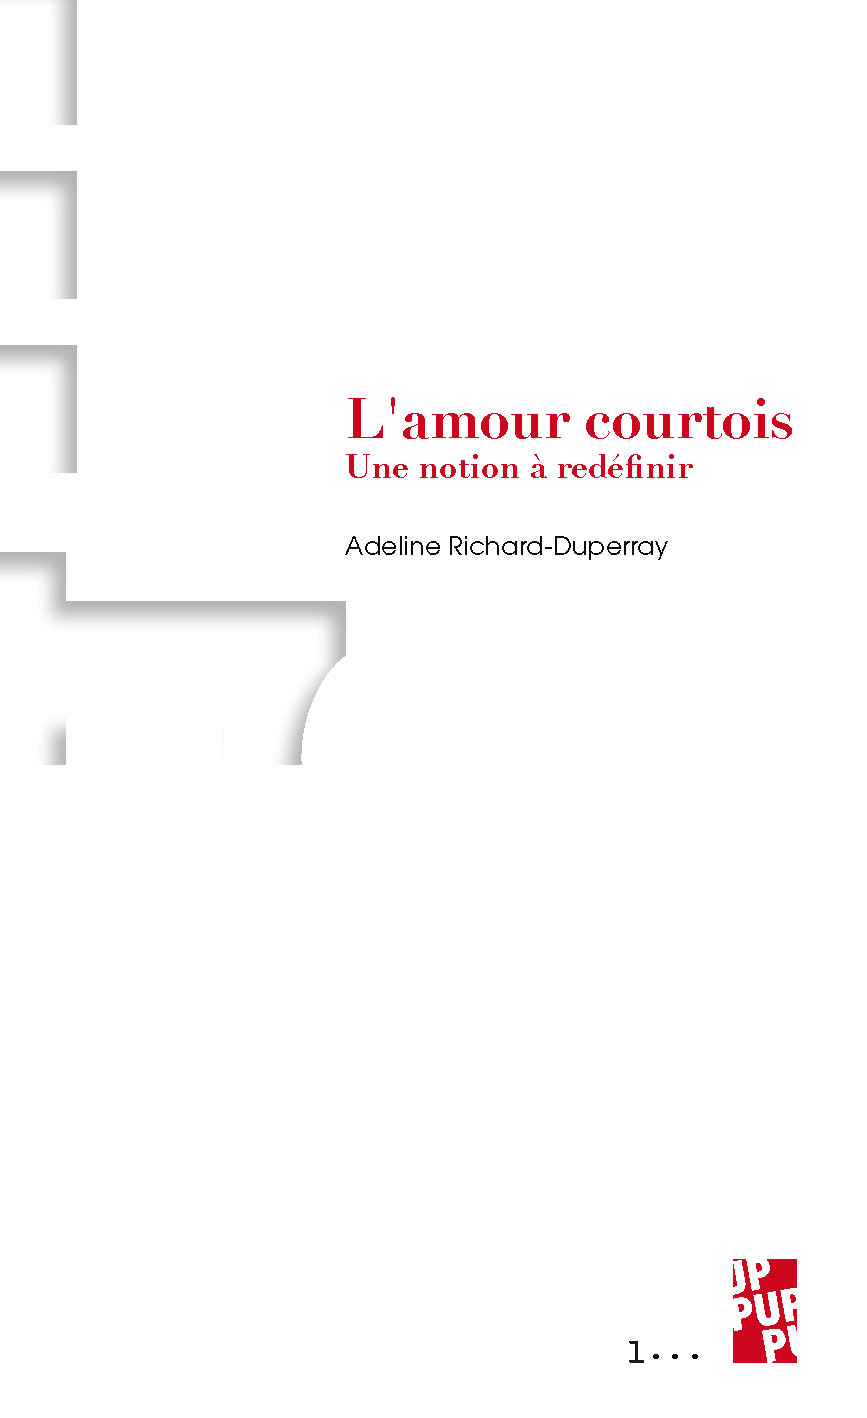 A. Richard-Duperray, L'amour courtois. Une notion à redéfinir